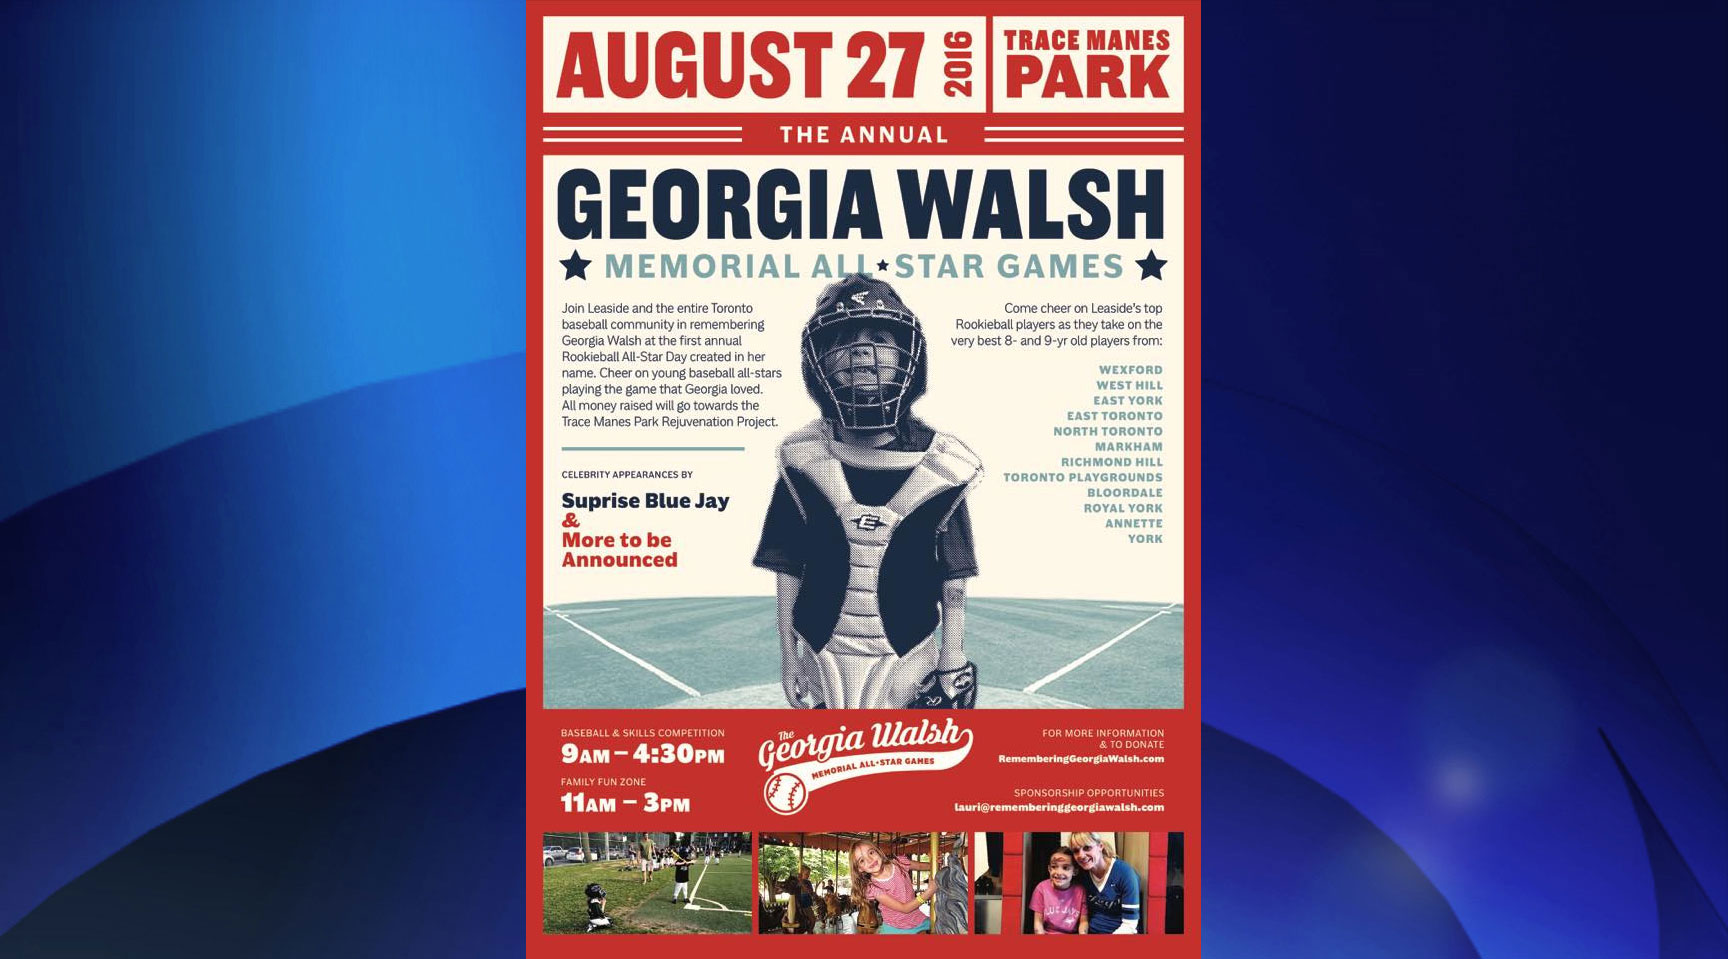 The poster for the Georgia Walsh Memorial Games, which take place on Aug. 27, 2016. Photo via rememberinggeorgiawalsh.com.